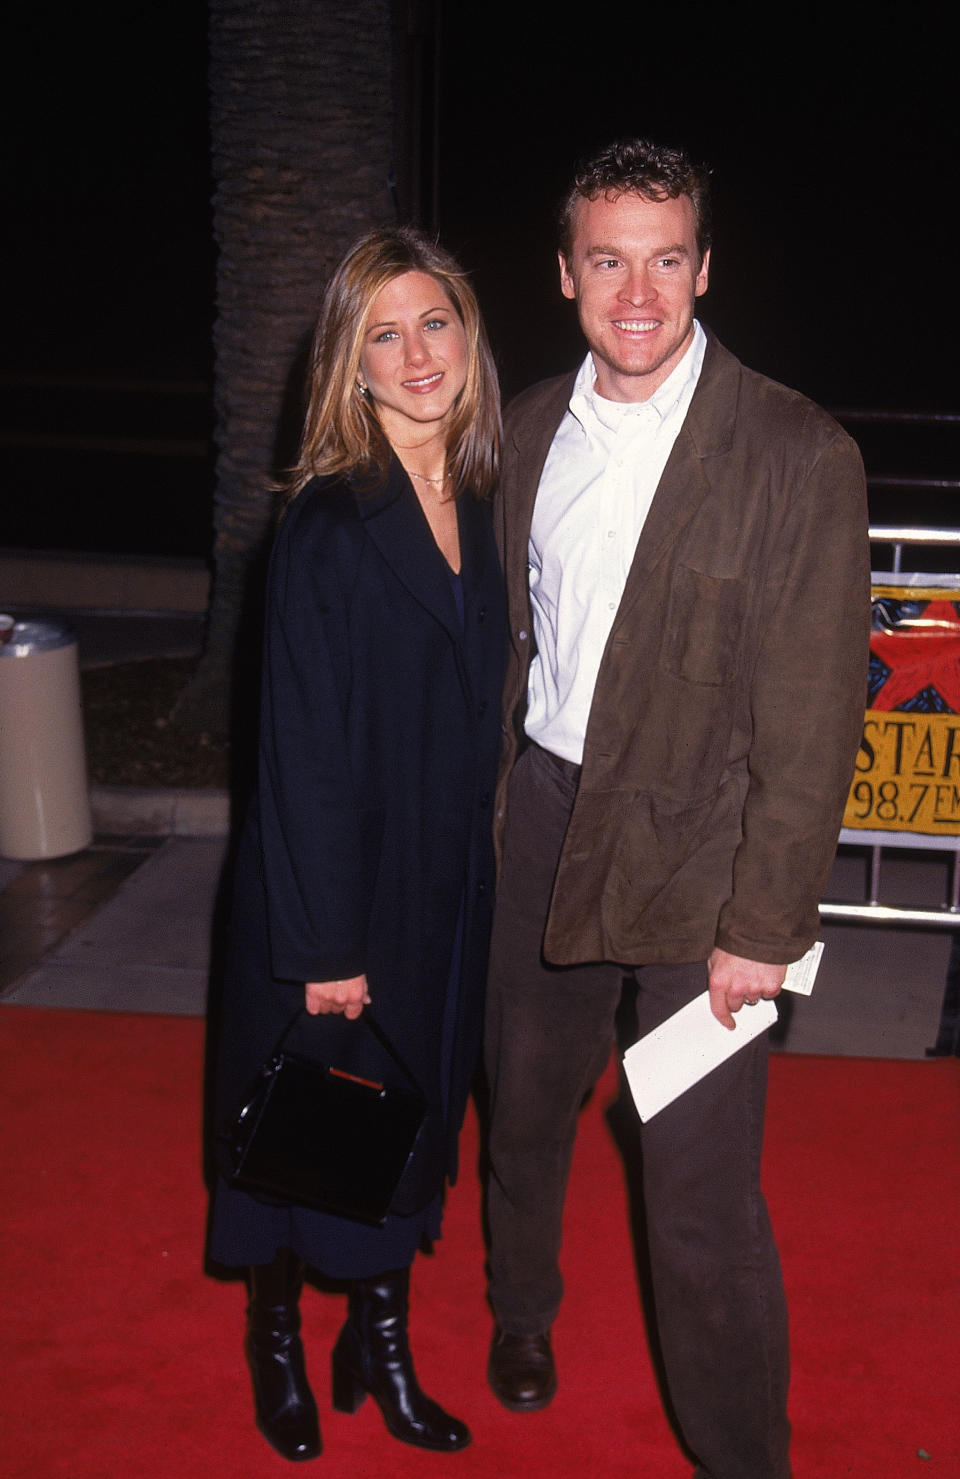 Dating actors Tate Donovan (R) & Jennifer Aniston (L).  (Photo by Mirek Towski/DMI/The LIFE Picture Collection via Getty Images)